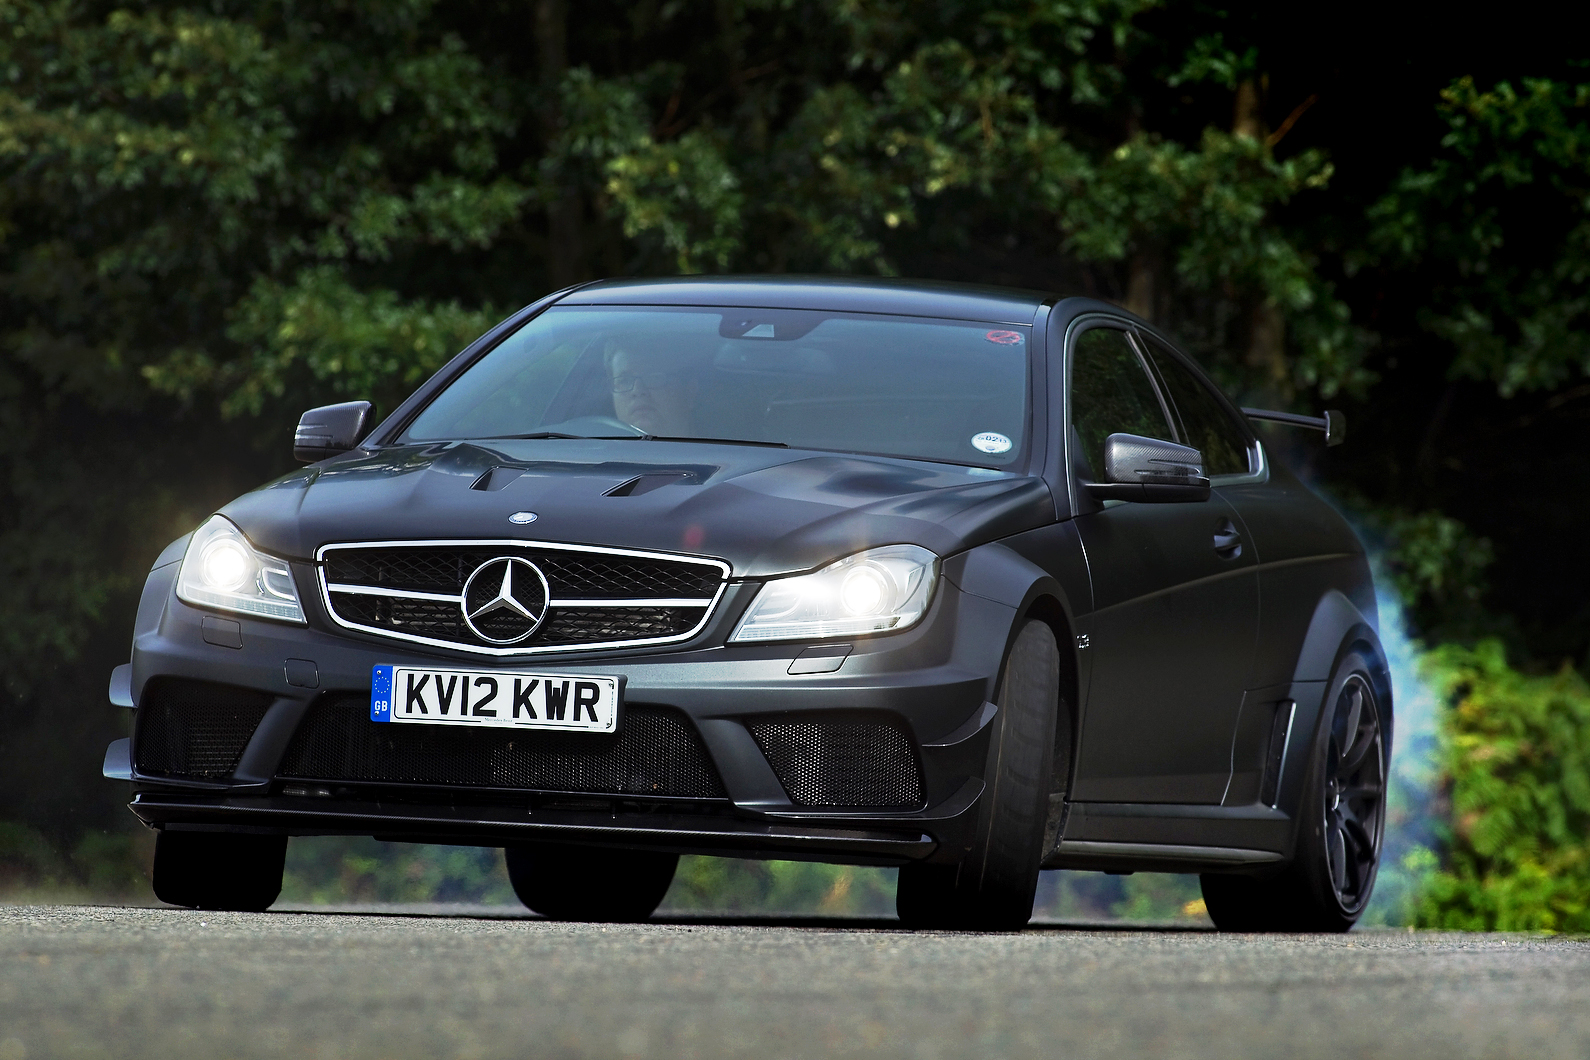 2012 mercedes c63 black edition for sale free programs utilities and apps domefile. Black Bedroom Furniture Sets. Home Design Ideas